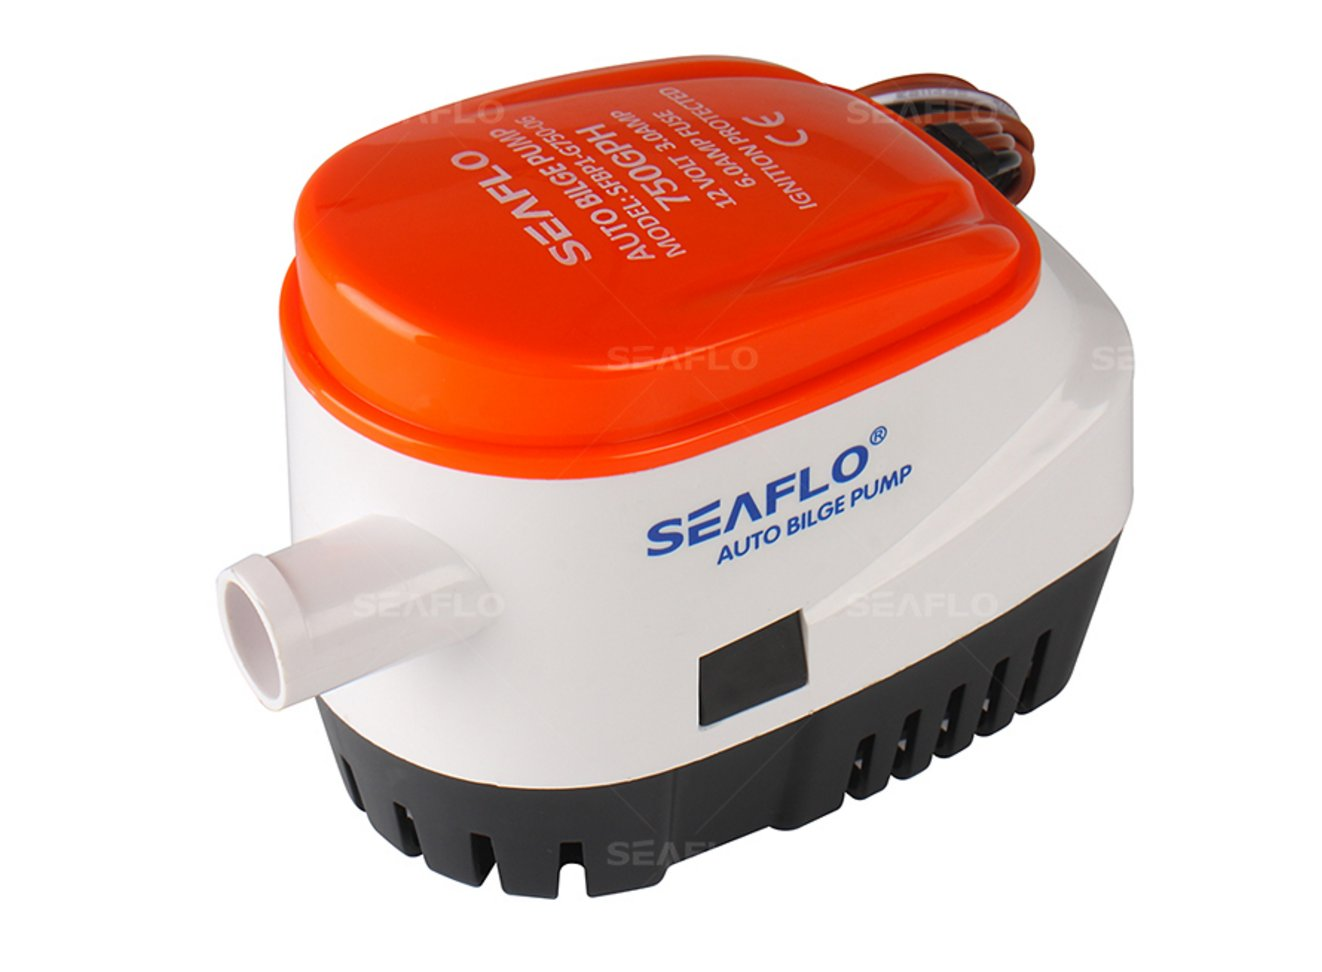 Amazon.com : Seaflo Automatic Submersible Boat Bilge Water Pump 12v 750gph  Auto with Float Switch : Bilge Pumps For Boats : Sports & Outdoors